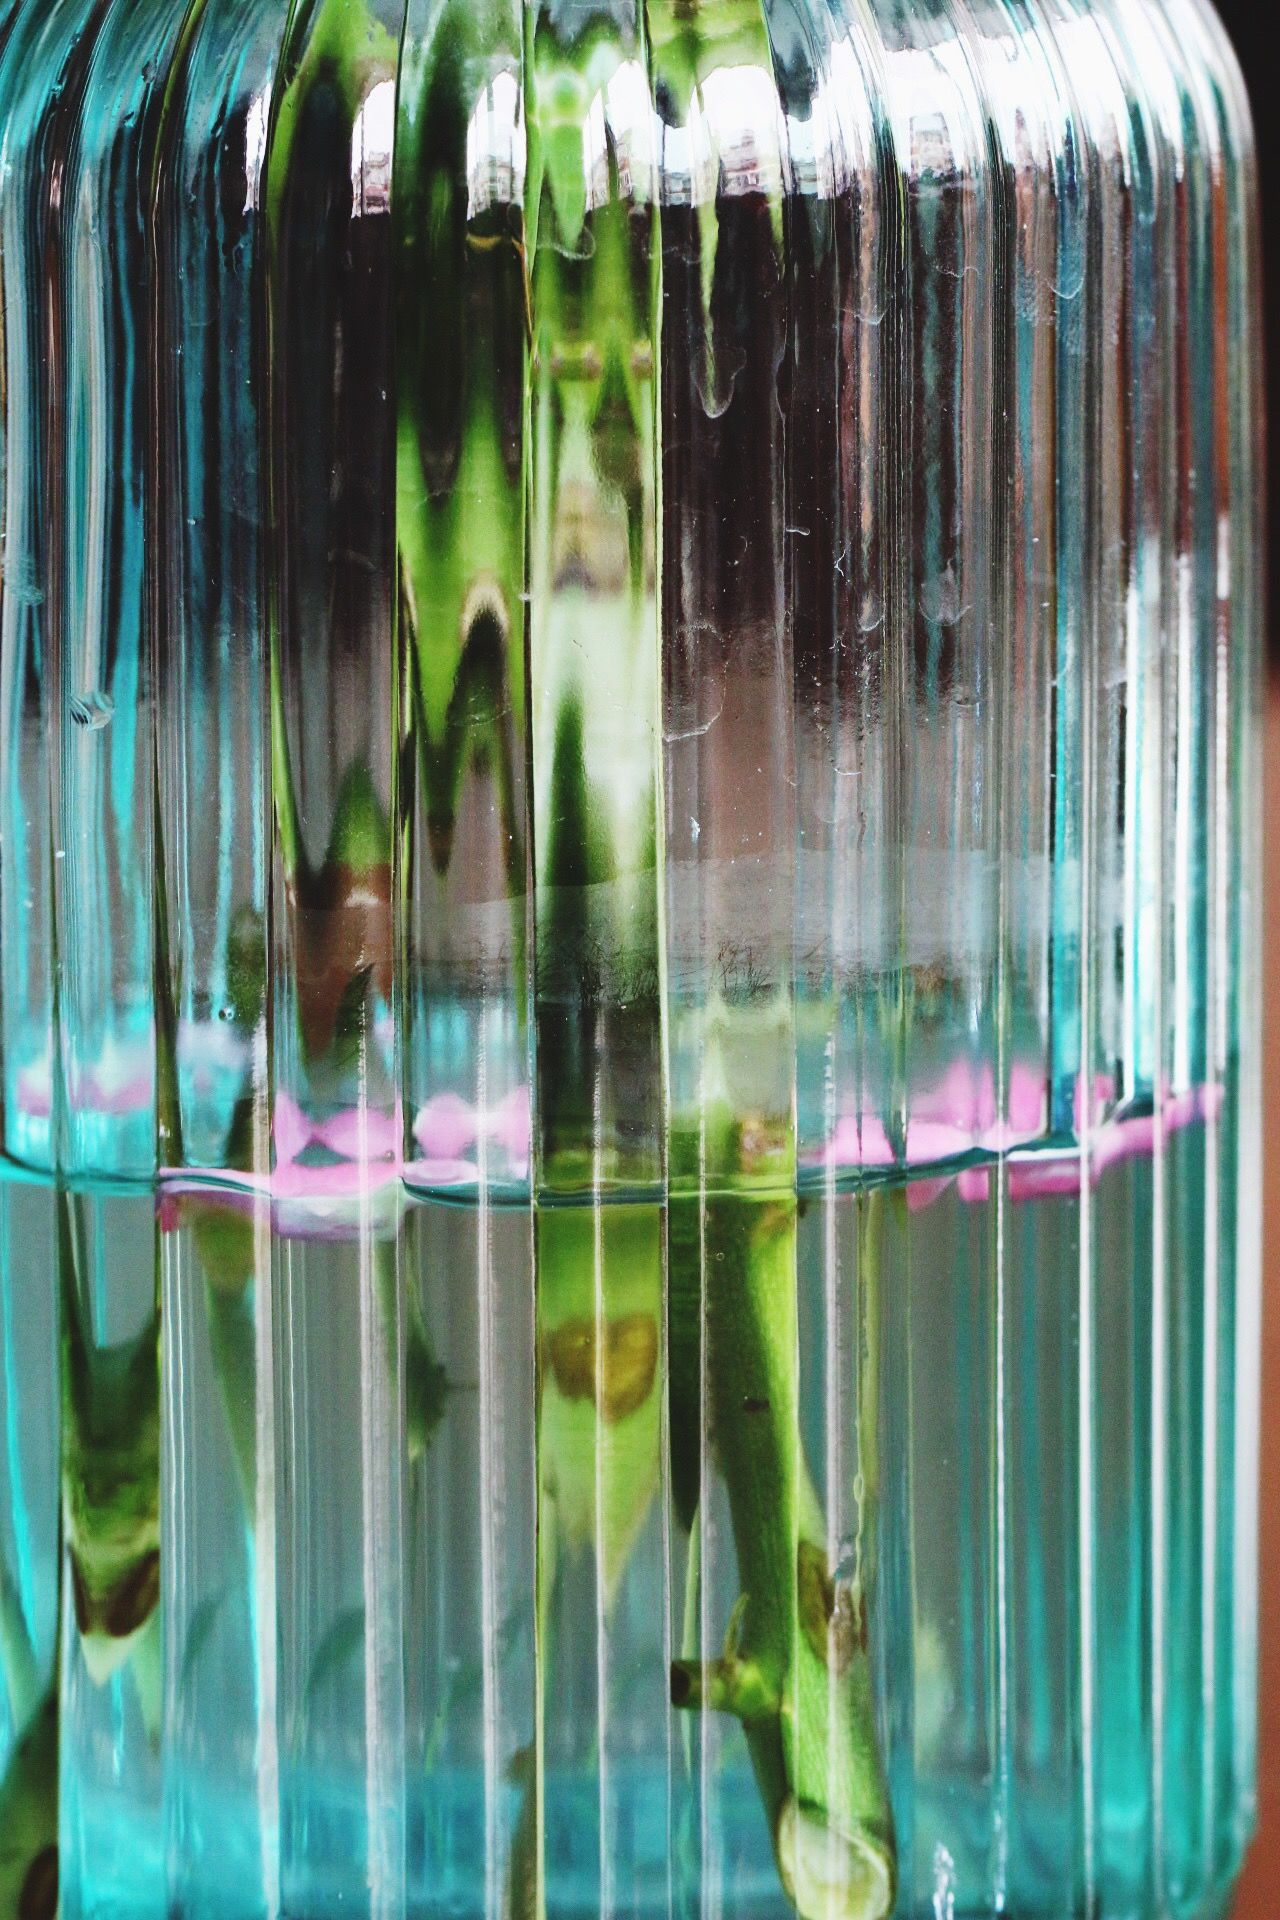 Looking Water Canon70d Hello World City Life Plant Glass